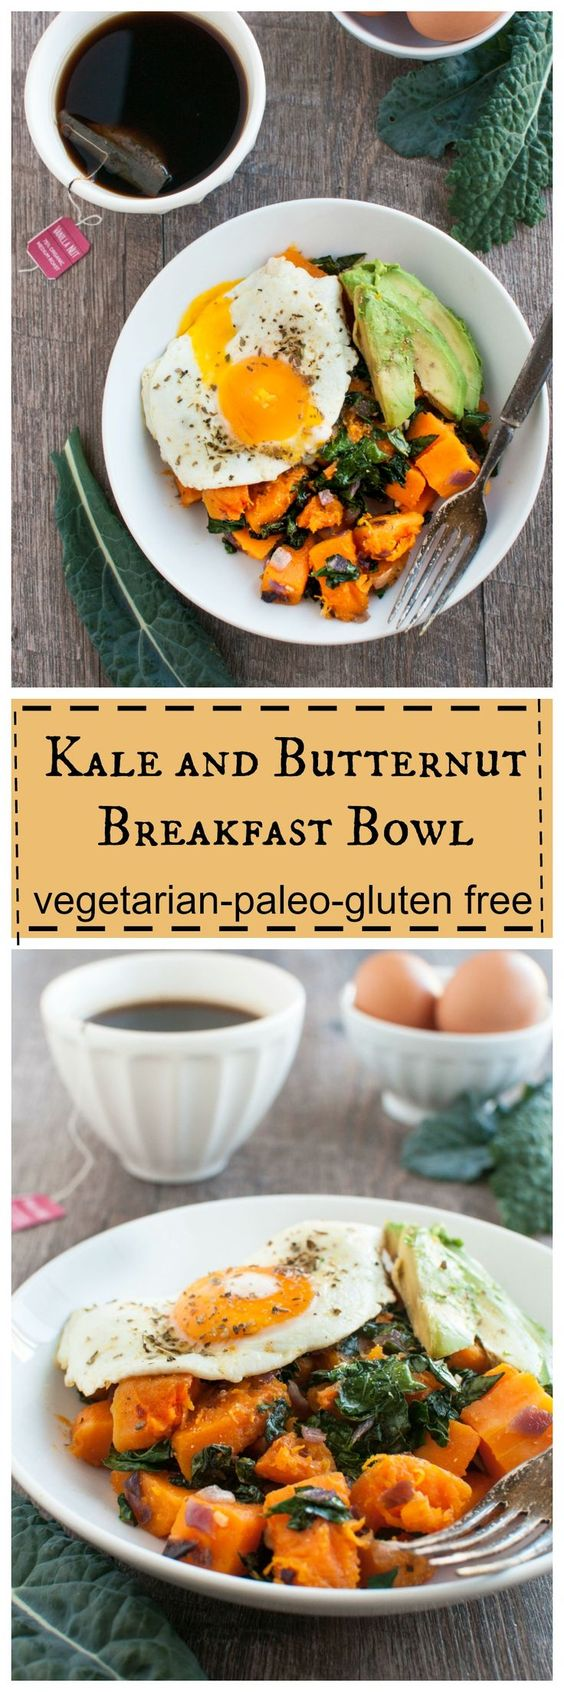 kale and butternut breakfast bowl 2